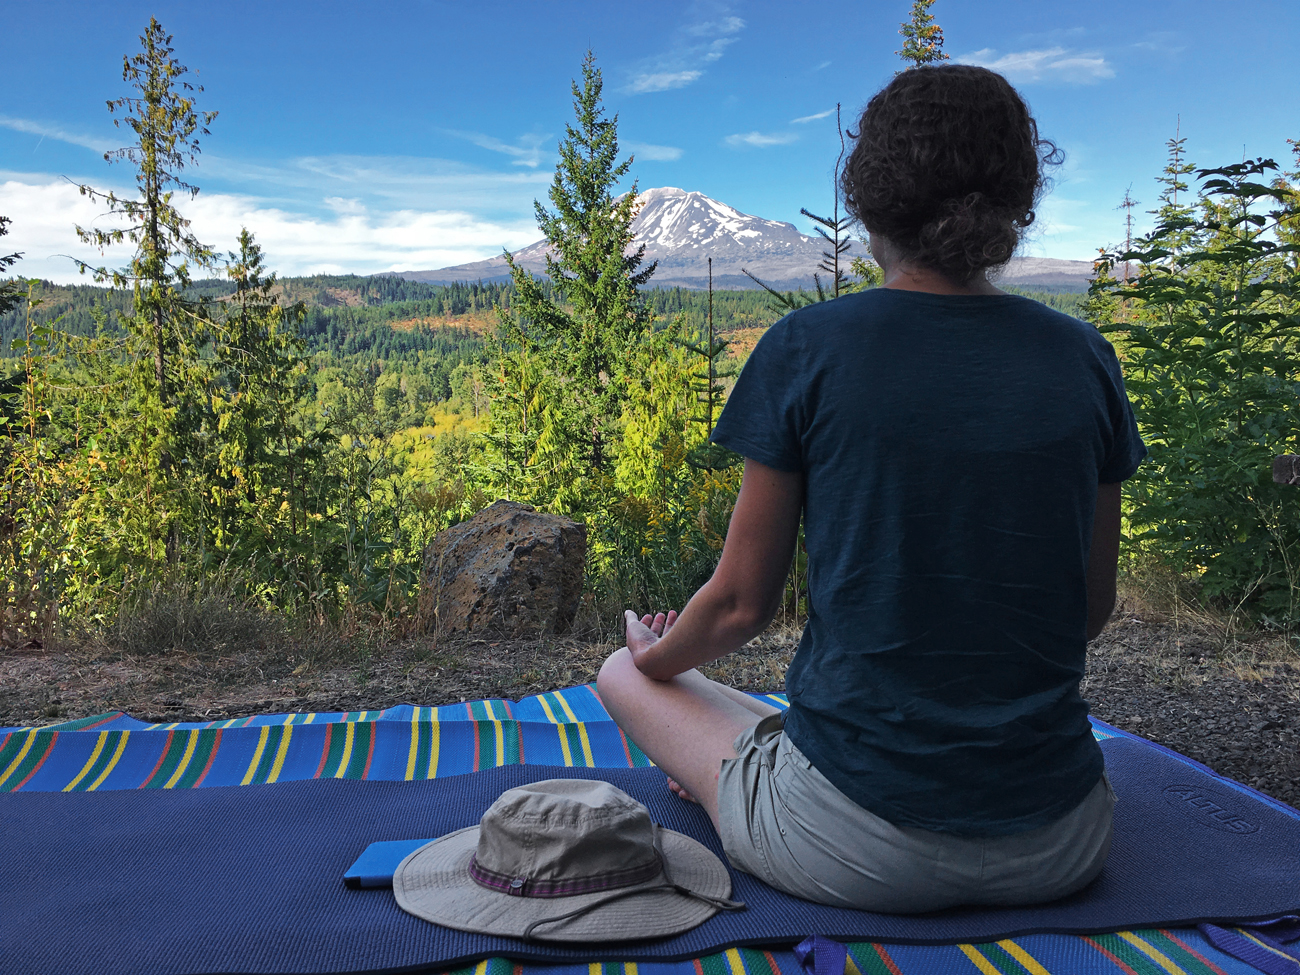 Christina meditating on her yoga mat with a view of Mt. Adams